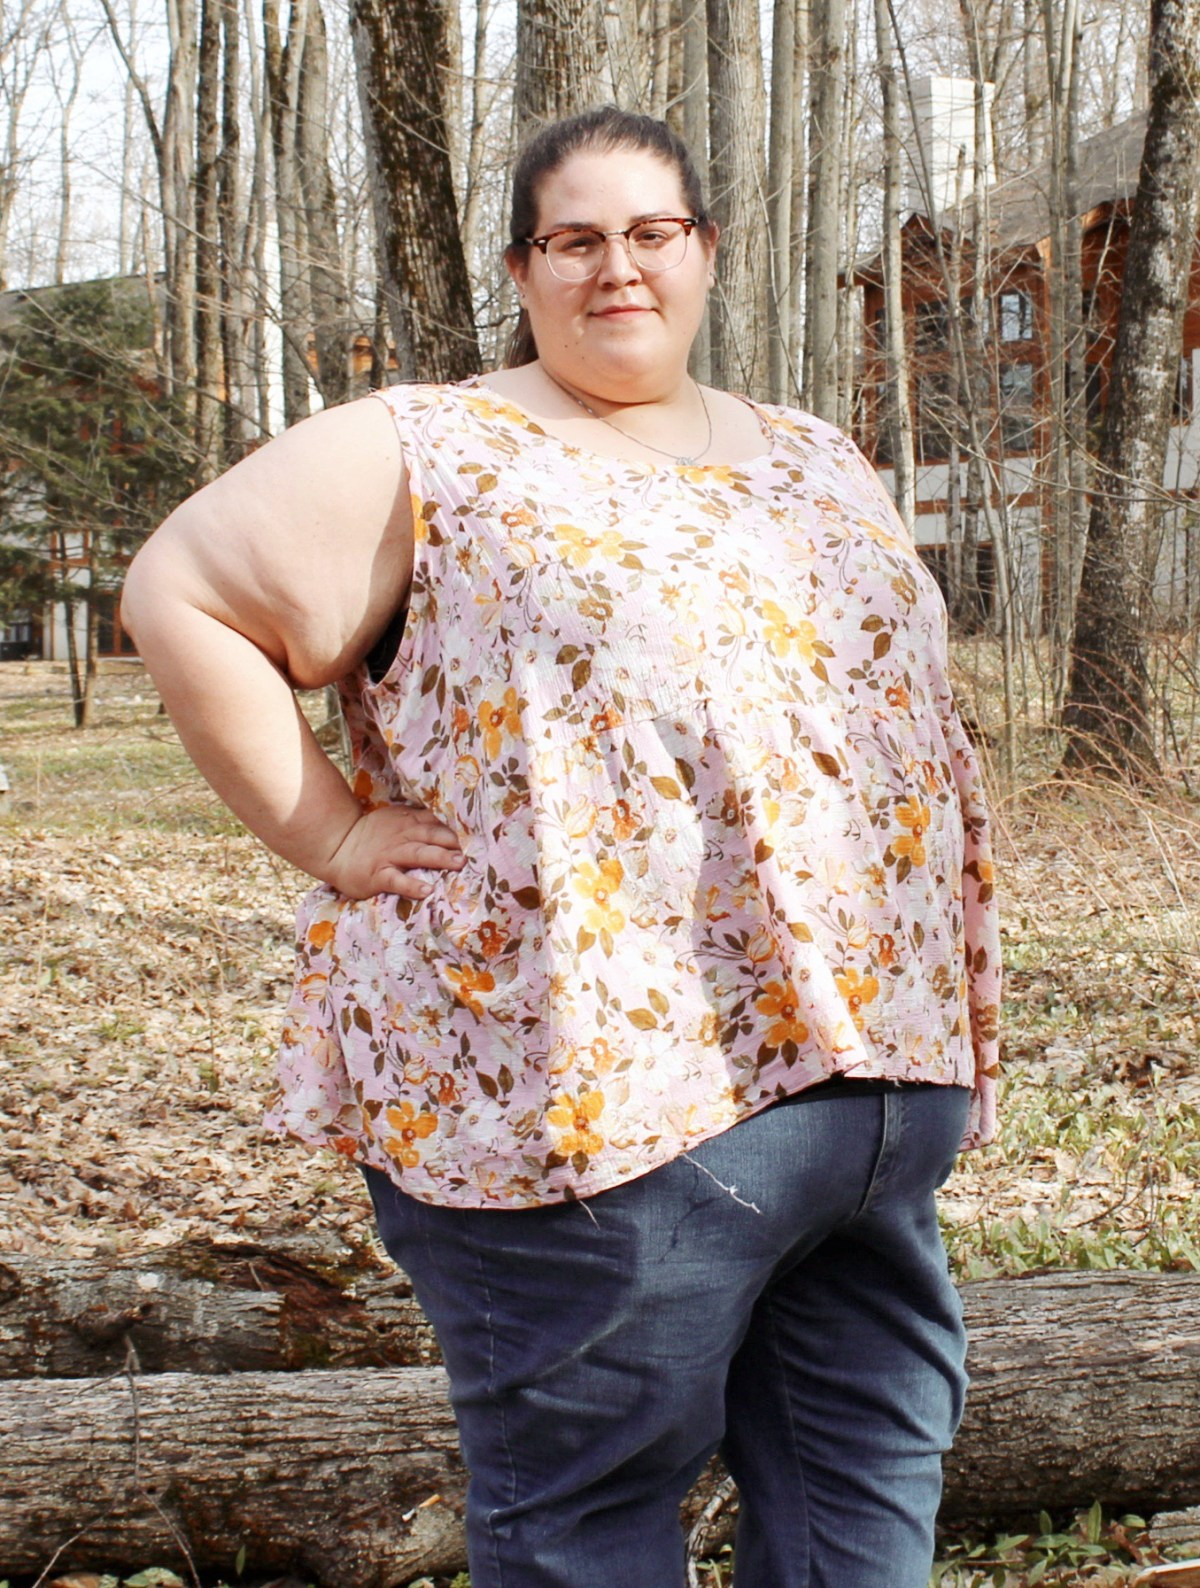 Jenn stands confidently, right hand on her hip, looking at the camera. Some large tree limbs, woods, and a house are behind her. She smiles slightly. Jenn wears blue jeans and a sleeveless pink and yellow floral blouse with a gathered lower bodice. A few loose threads can be seen dangling at the right front hem of the blouse.